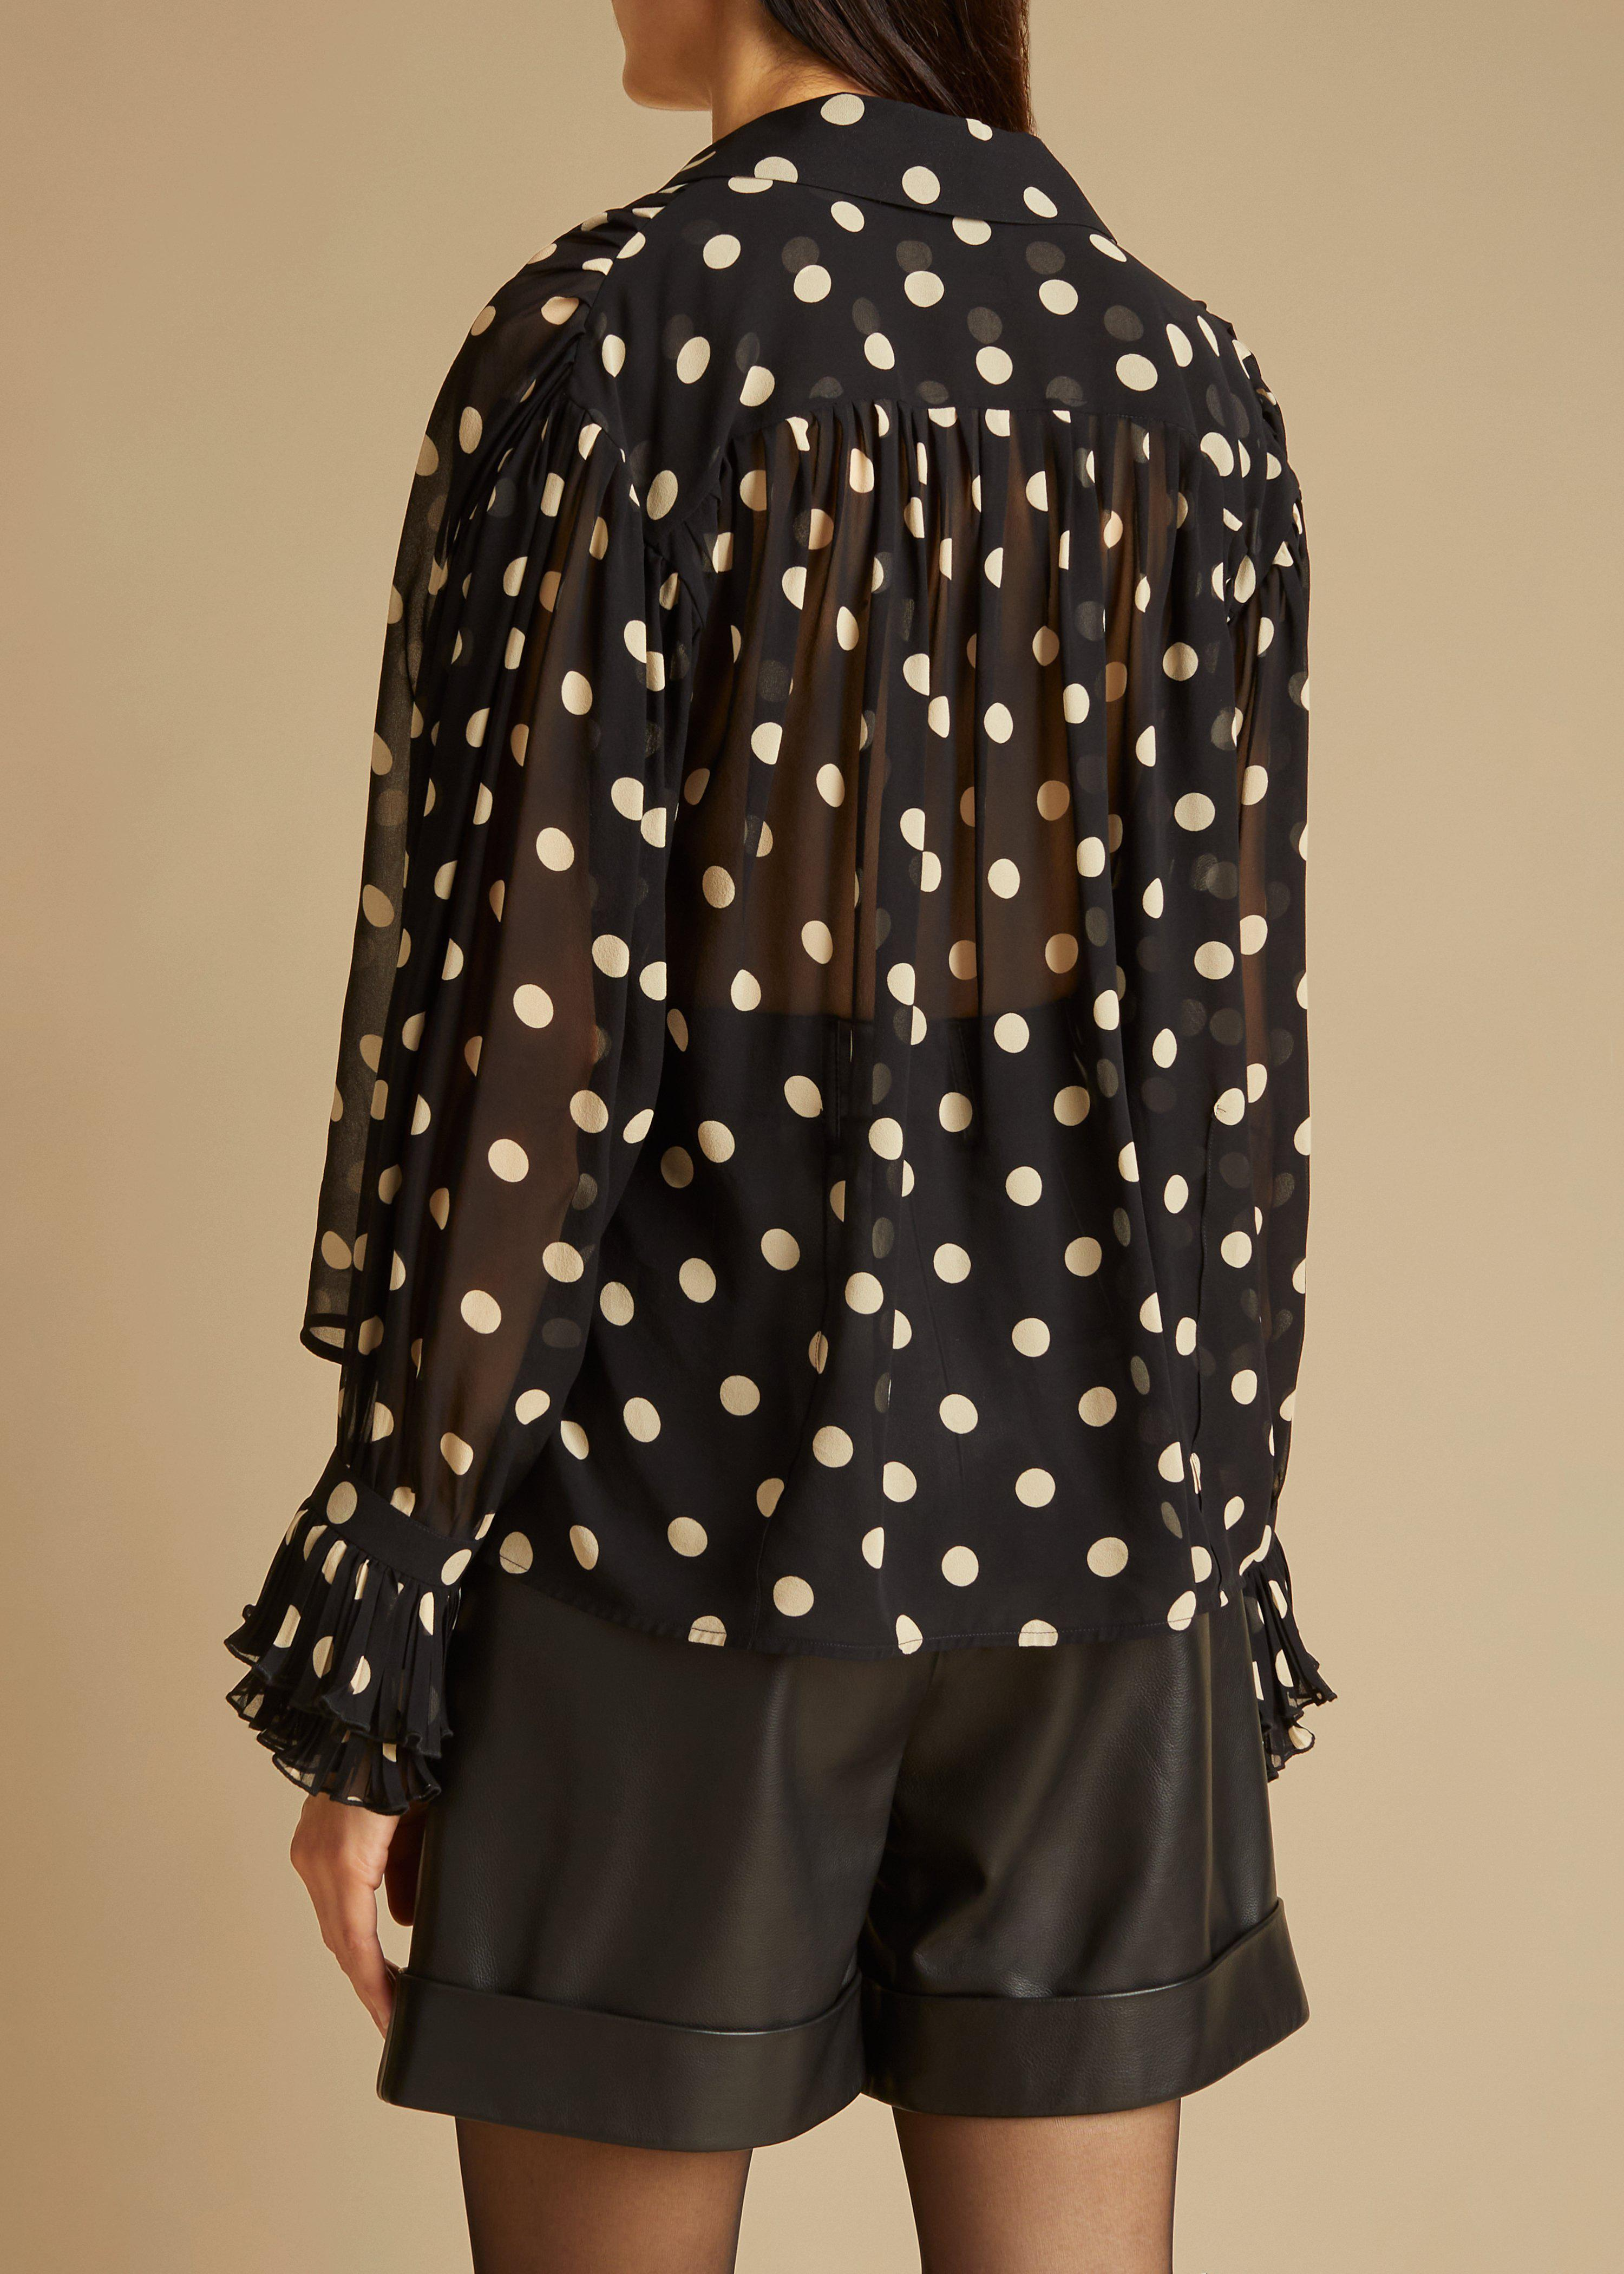 The Vanina Top in Black and Creme Dot 4